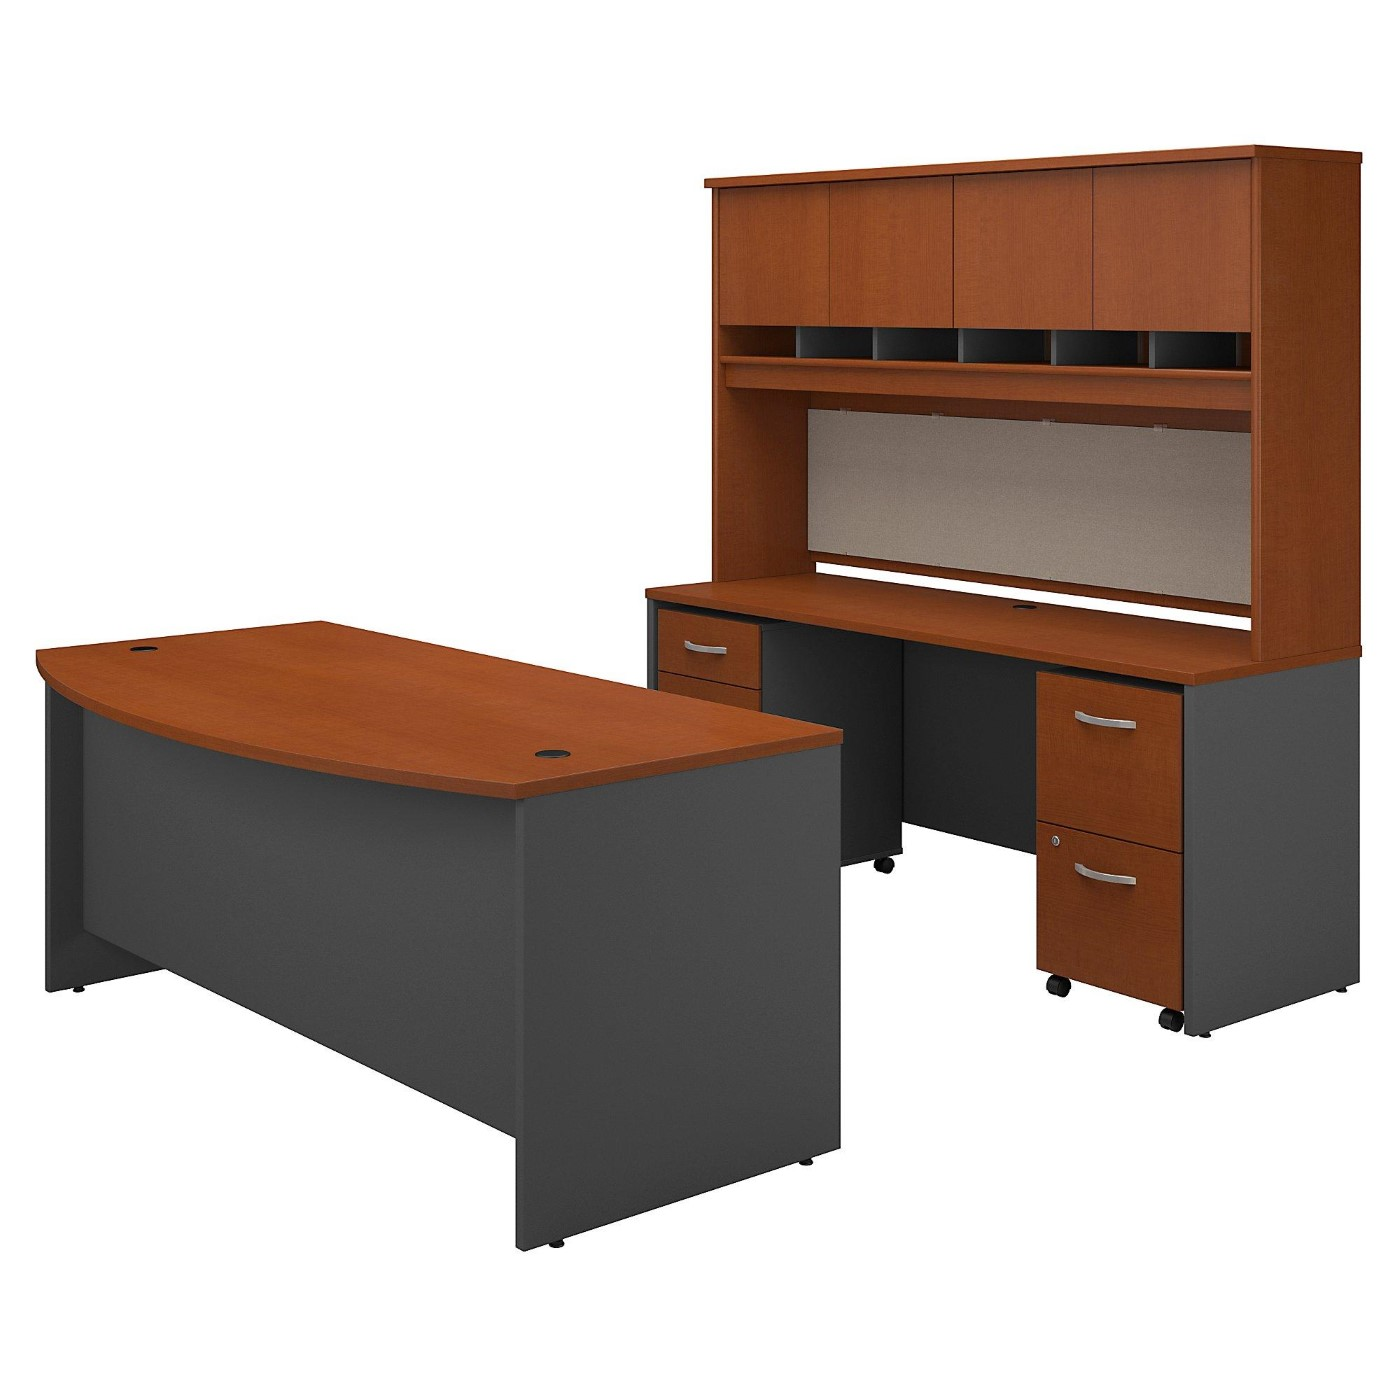 </b></font><b>BUSH BUSINESS FURNITURE SERIES C BOW FRONT DESK WITH CREDENZA, HUTCH AND STORAGE. FREE SHIPPING</b></font>  VIDEO BELOW. </b></font></b>